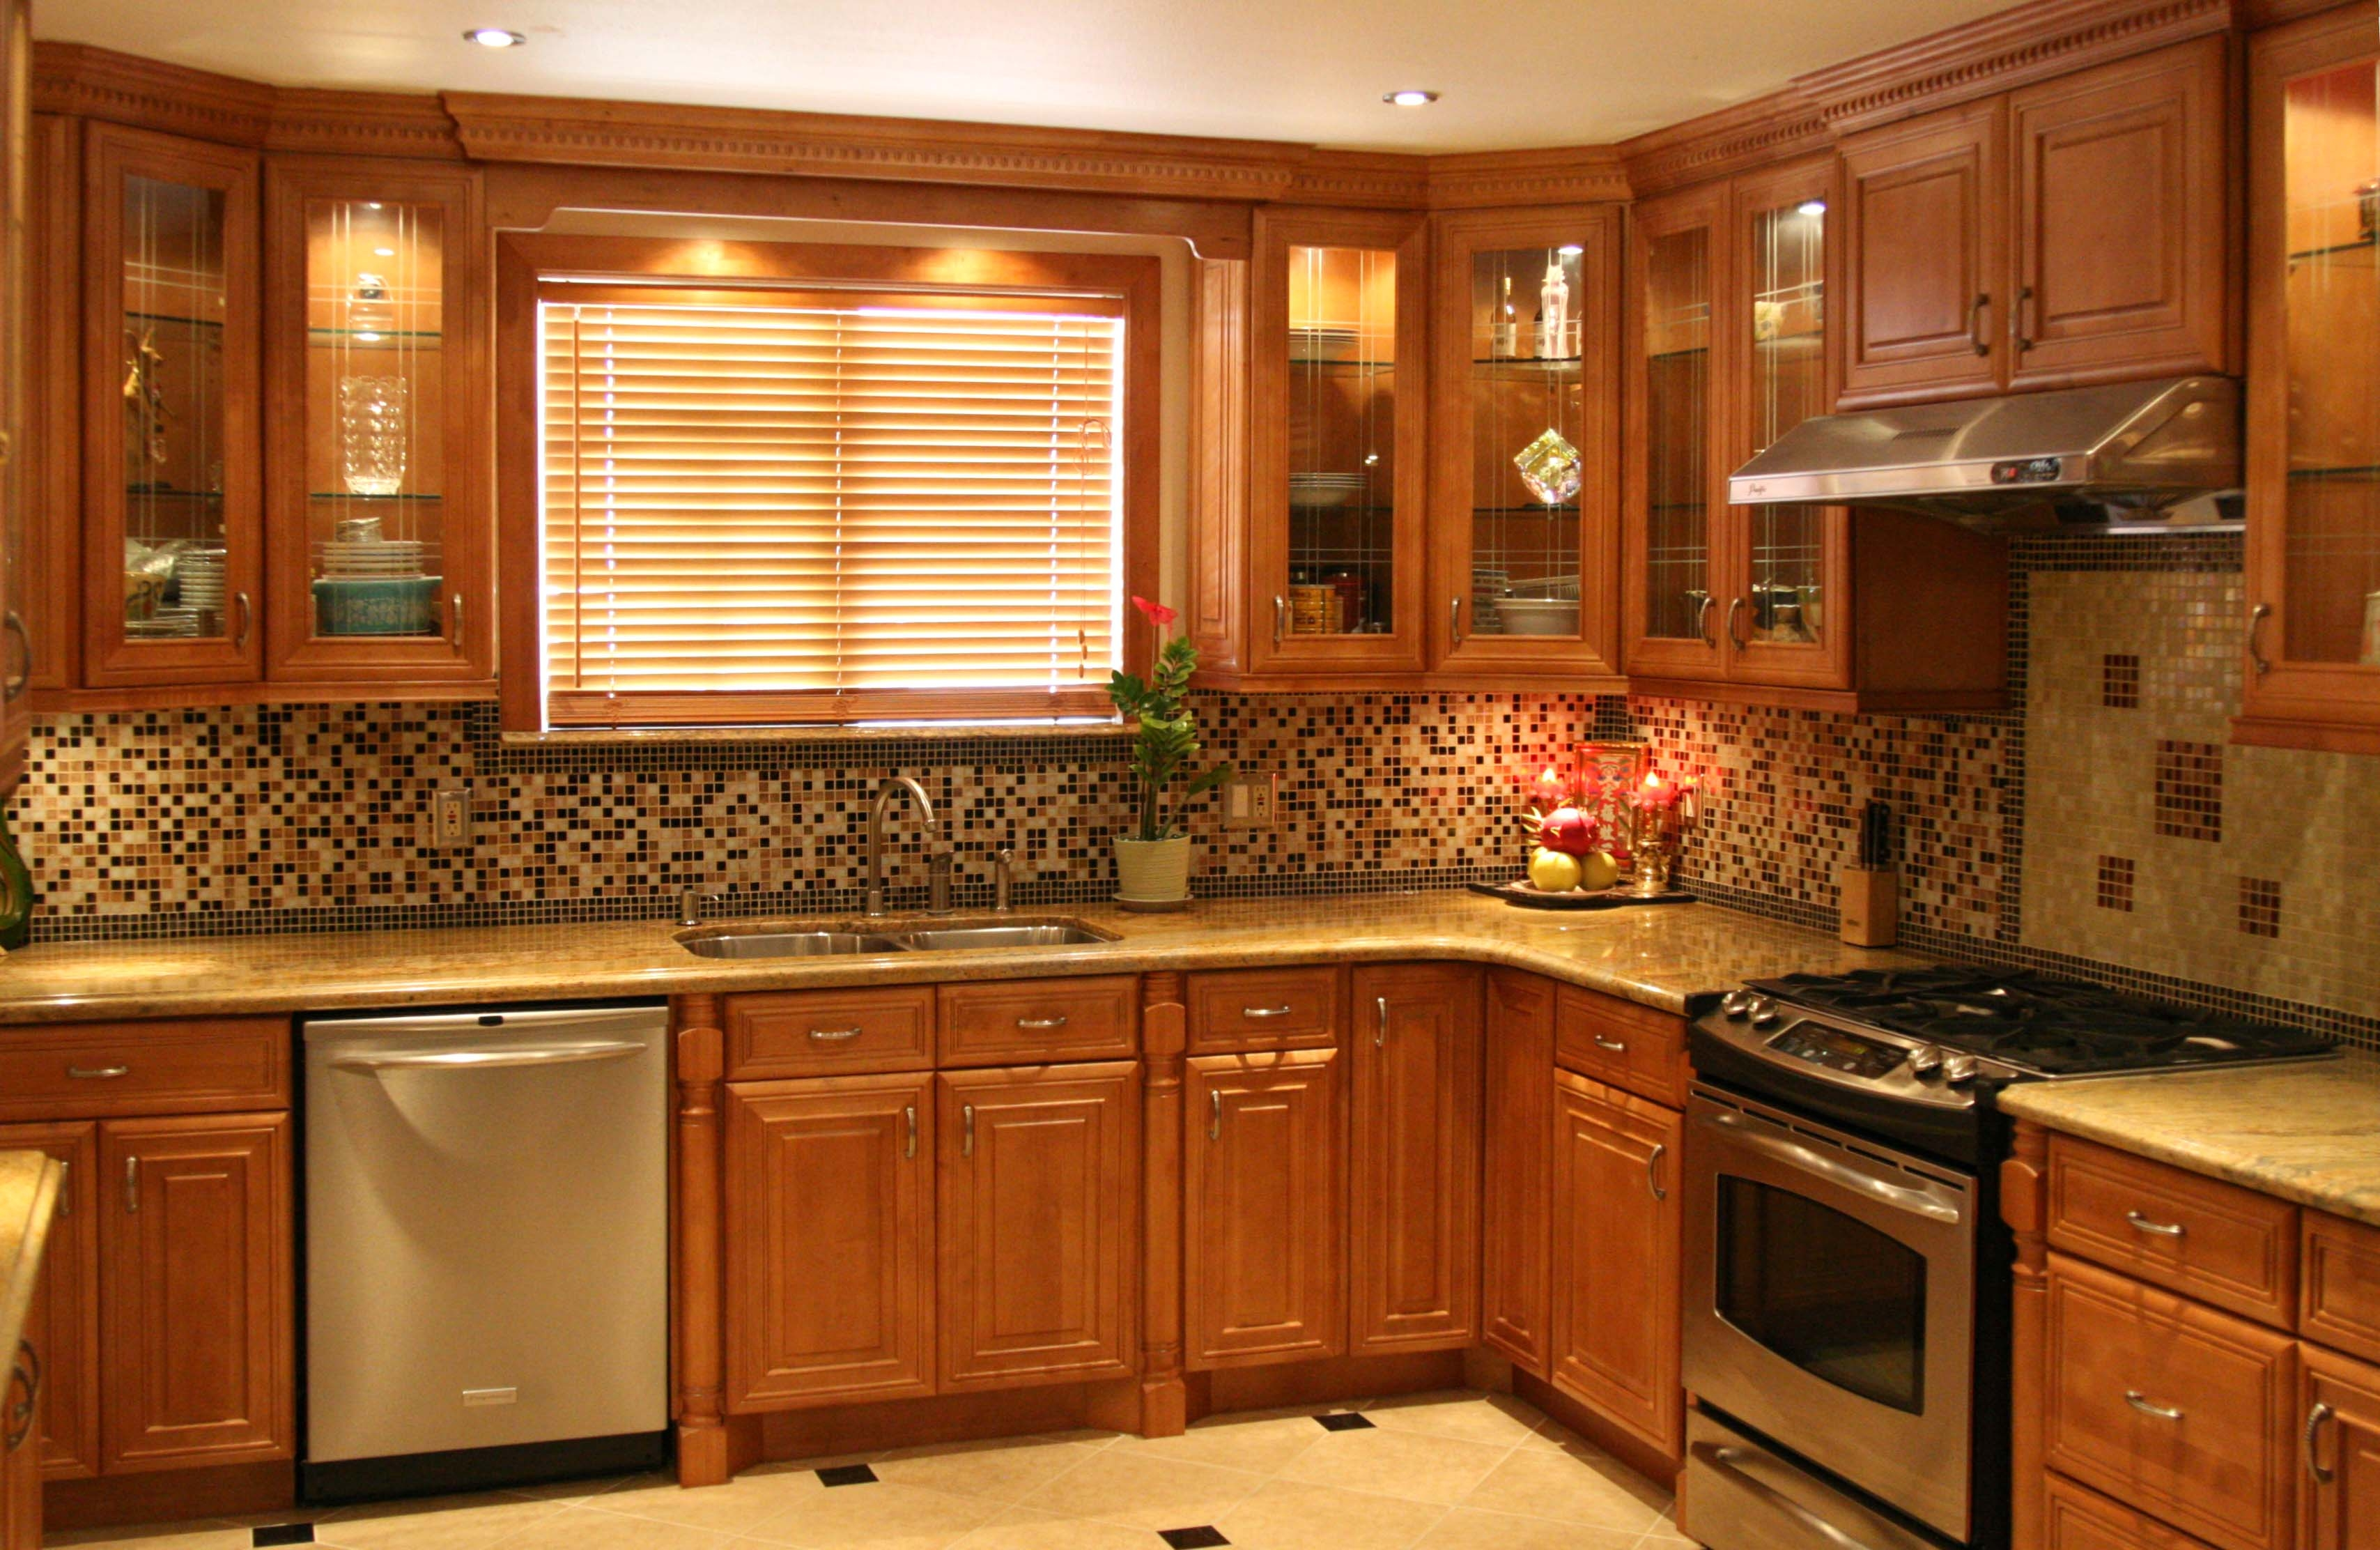 Images Of Honey Colored Kitchen Cabinets